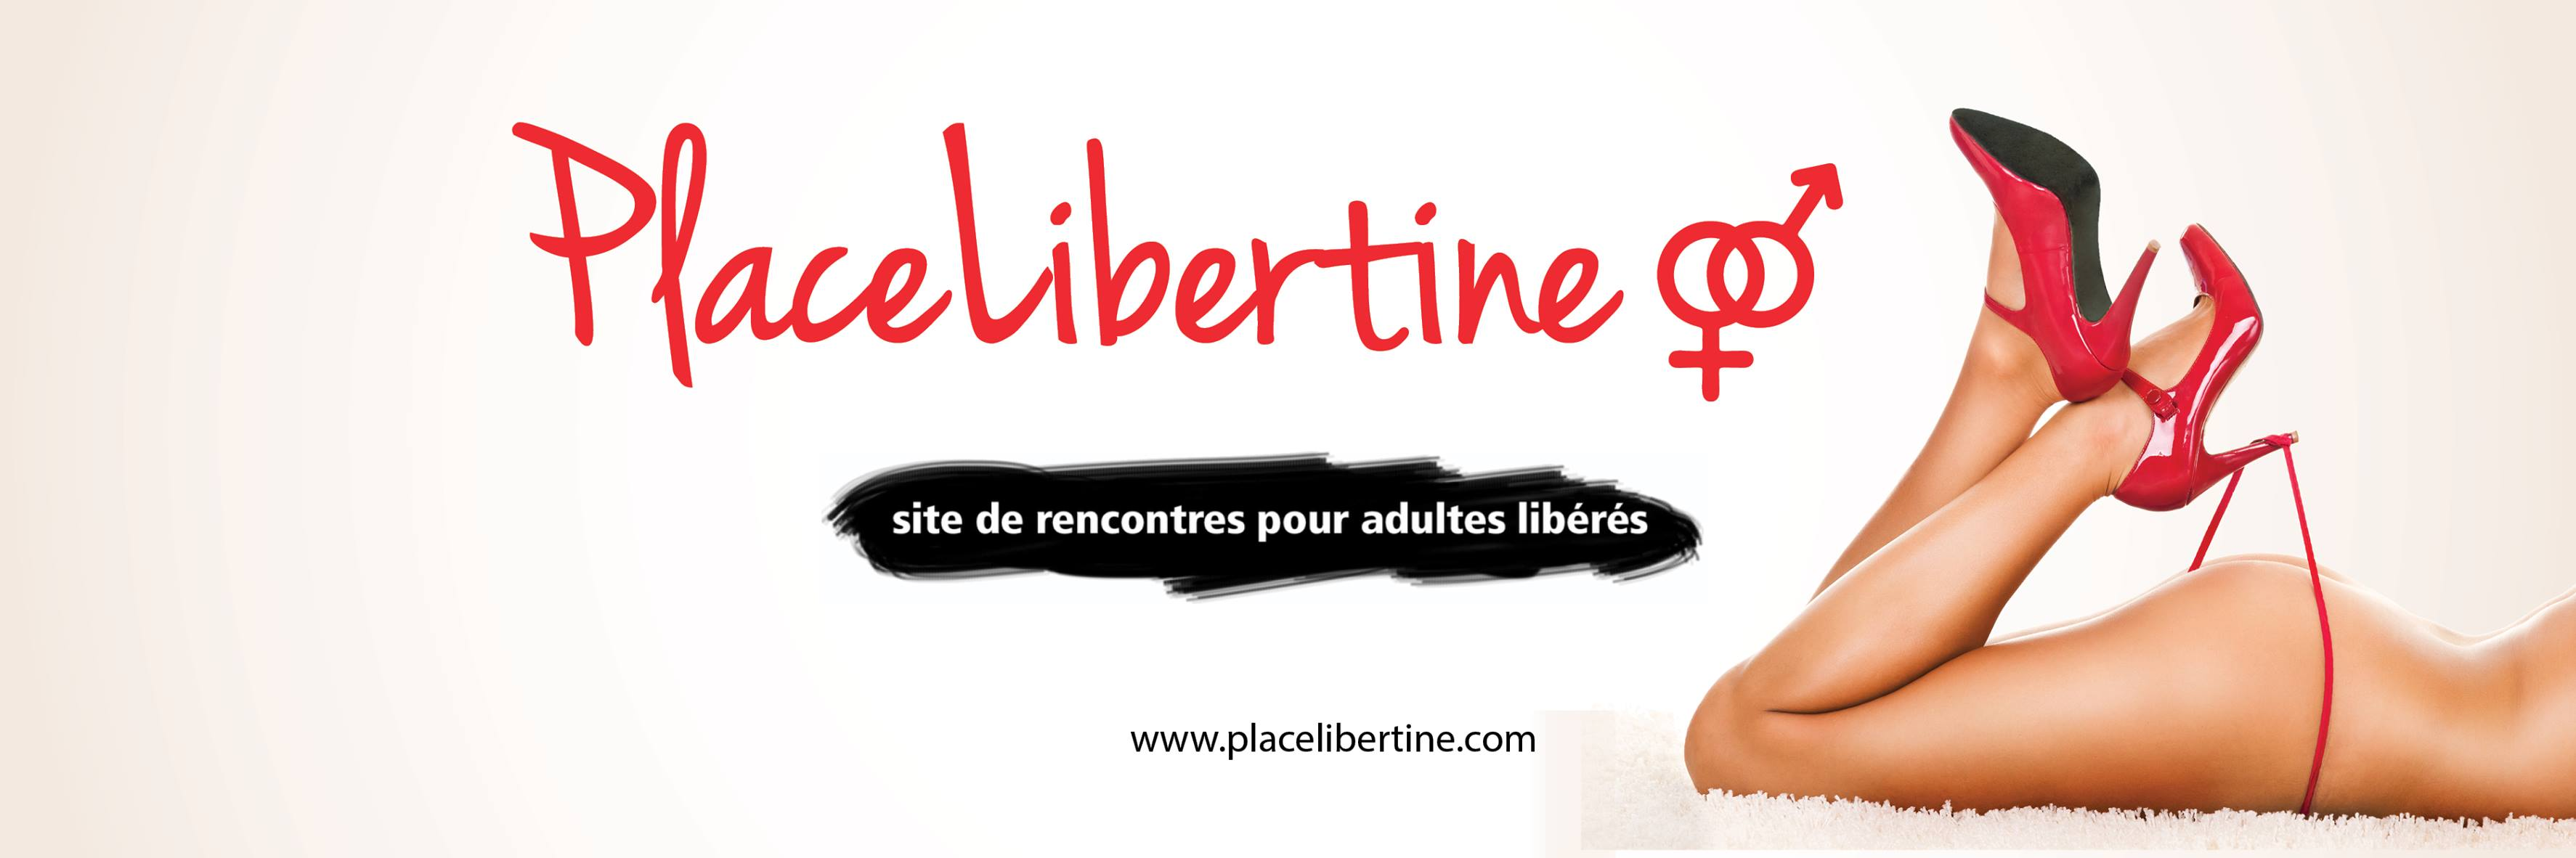 meilleur sites de rencontres placelibertine